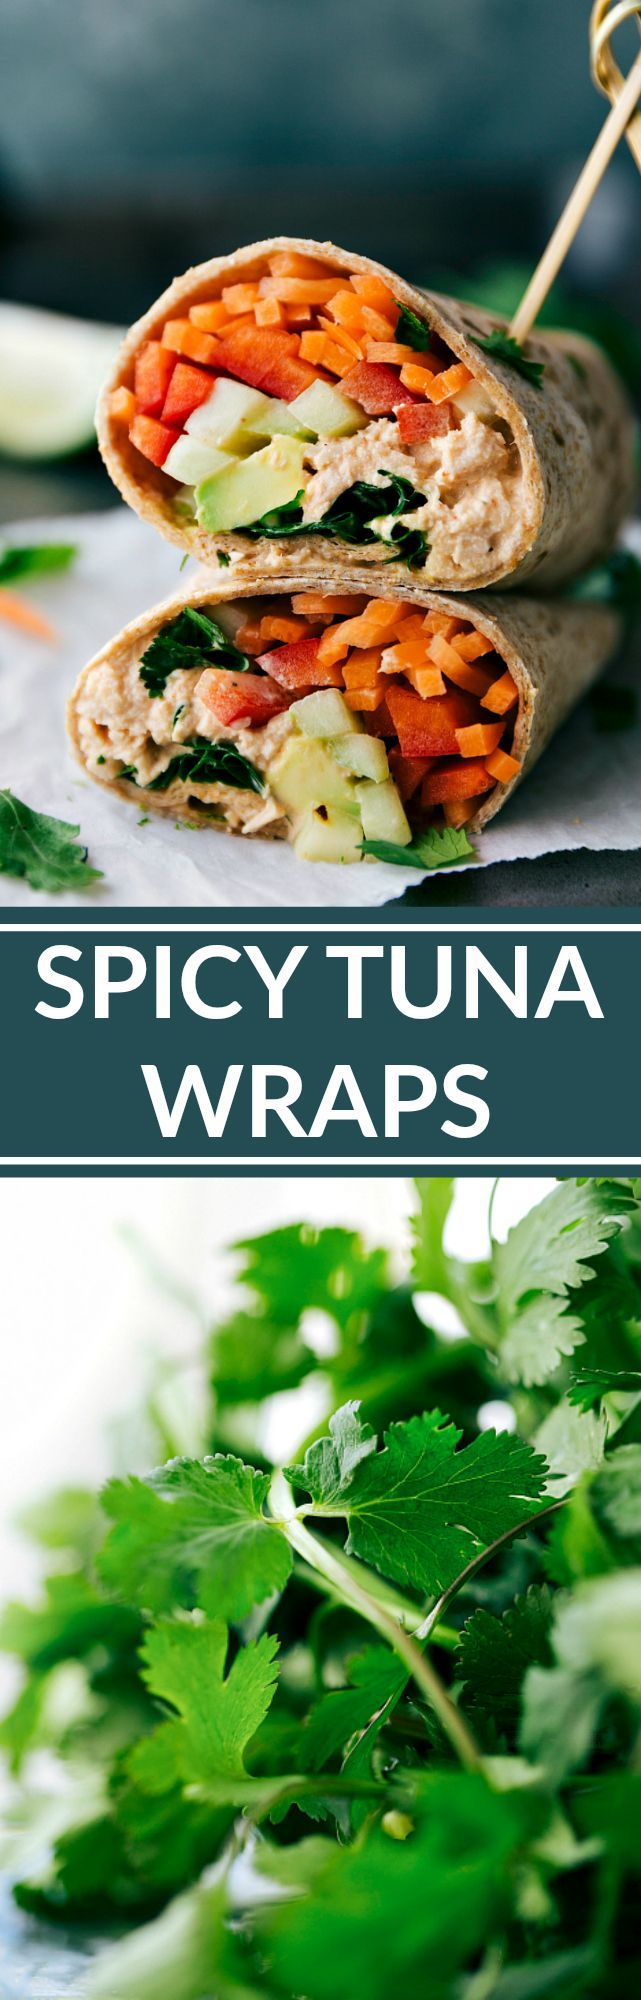 SPICY TUNA WRAPS! Healthy easy and delicious! via http://chelseasmessyapron.com